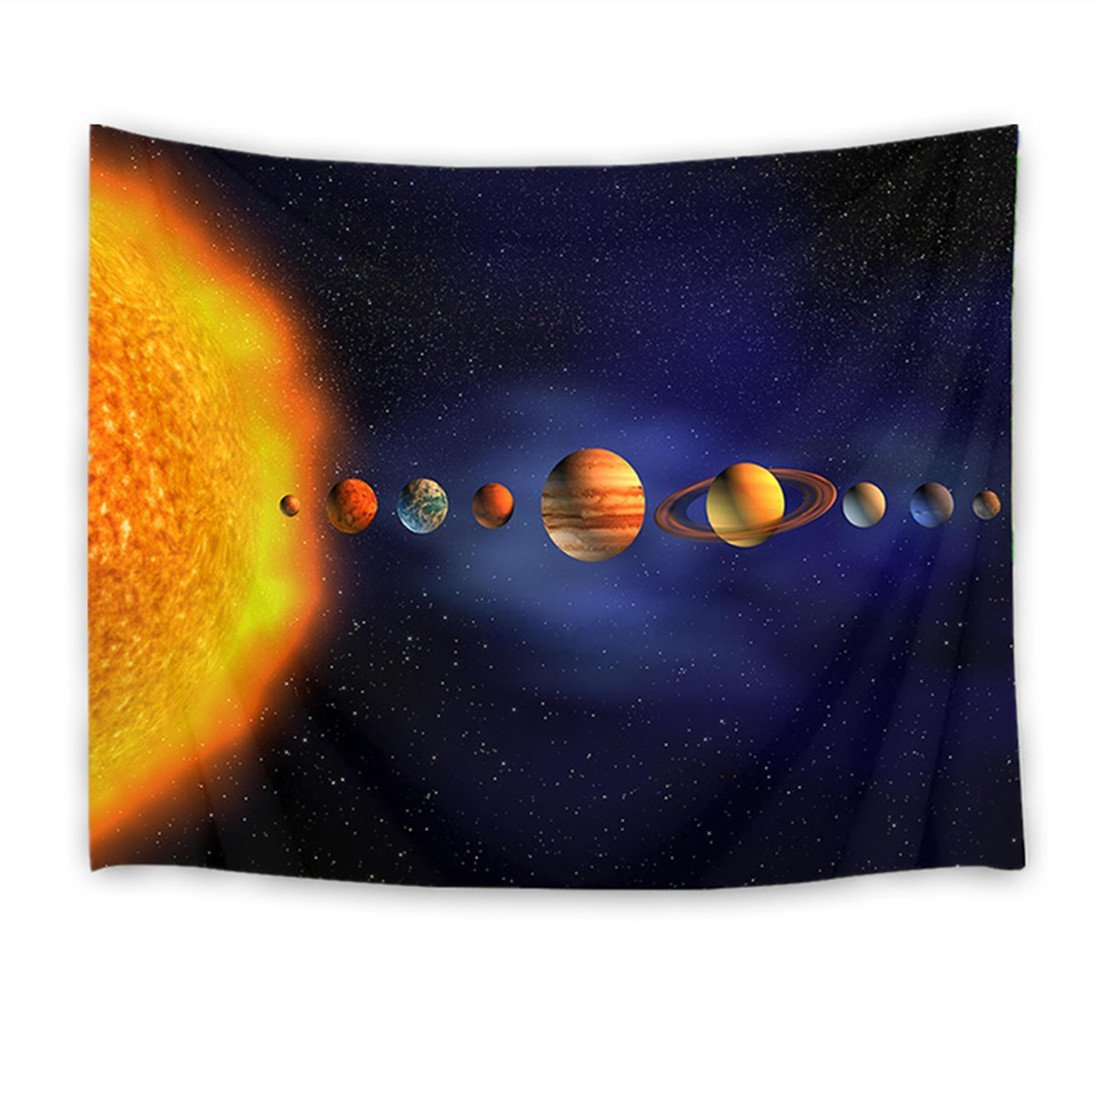 HVEST Univese Tapestry Space Tapestry Wall Hanging Starry Sky and Planets in Solar System Wall Blankets for Bedroom Living Room Dorm Wall Decor,59 W X 40 H INCH